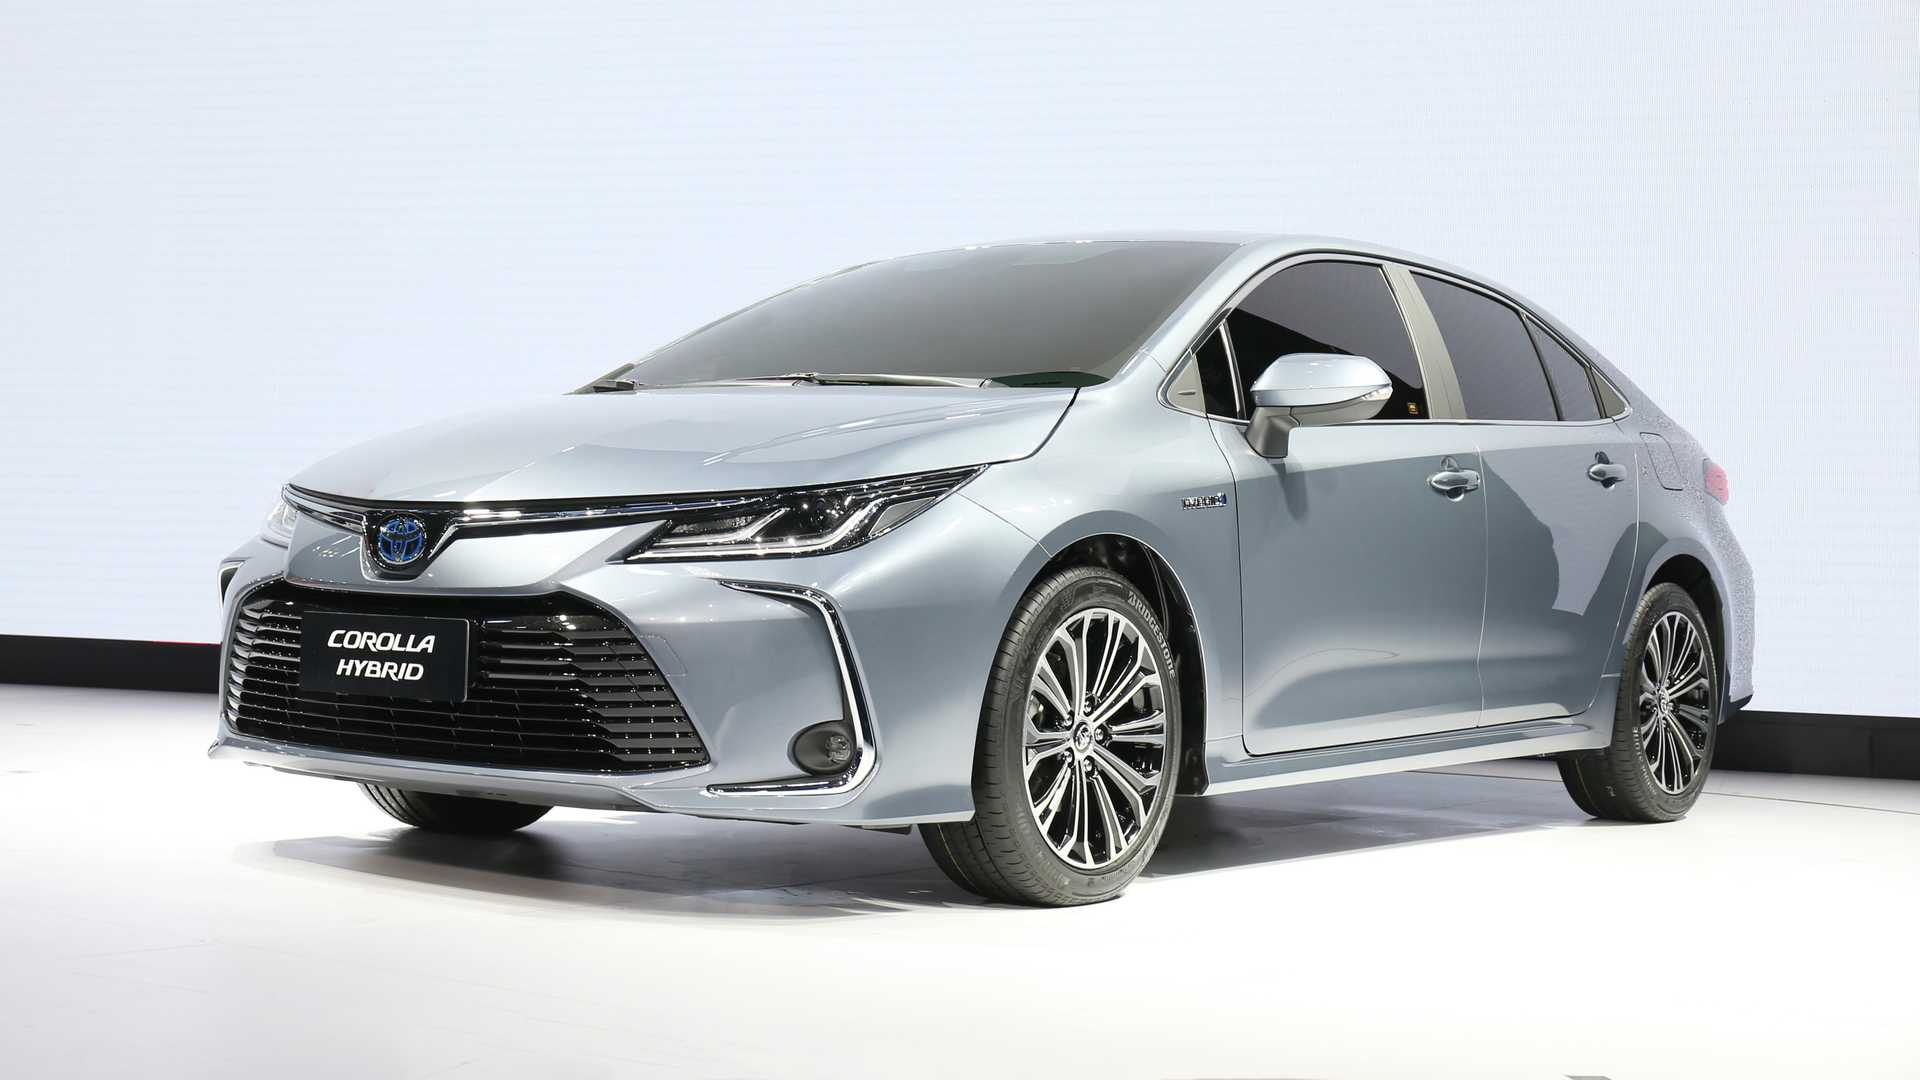 27 New Toyota Avensis 2020 First Drive with Toyota Avensis 2020